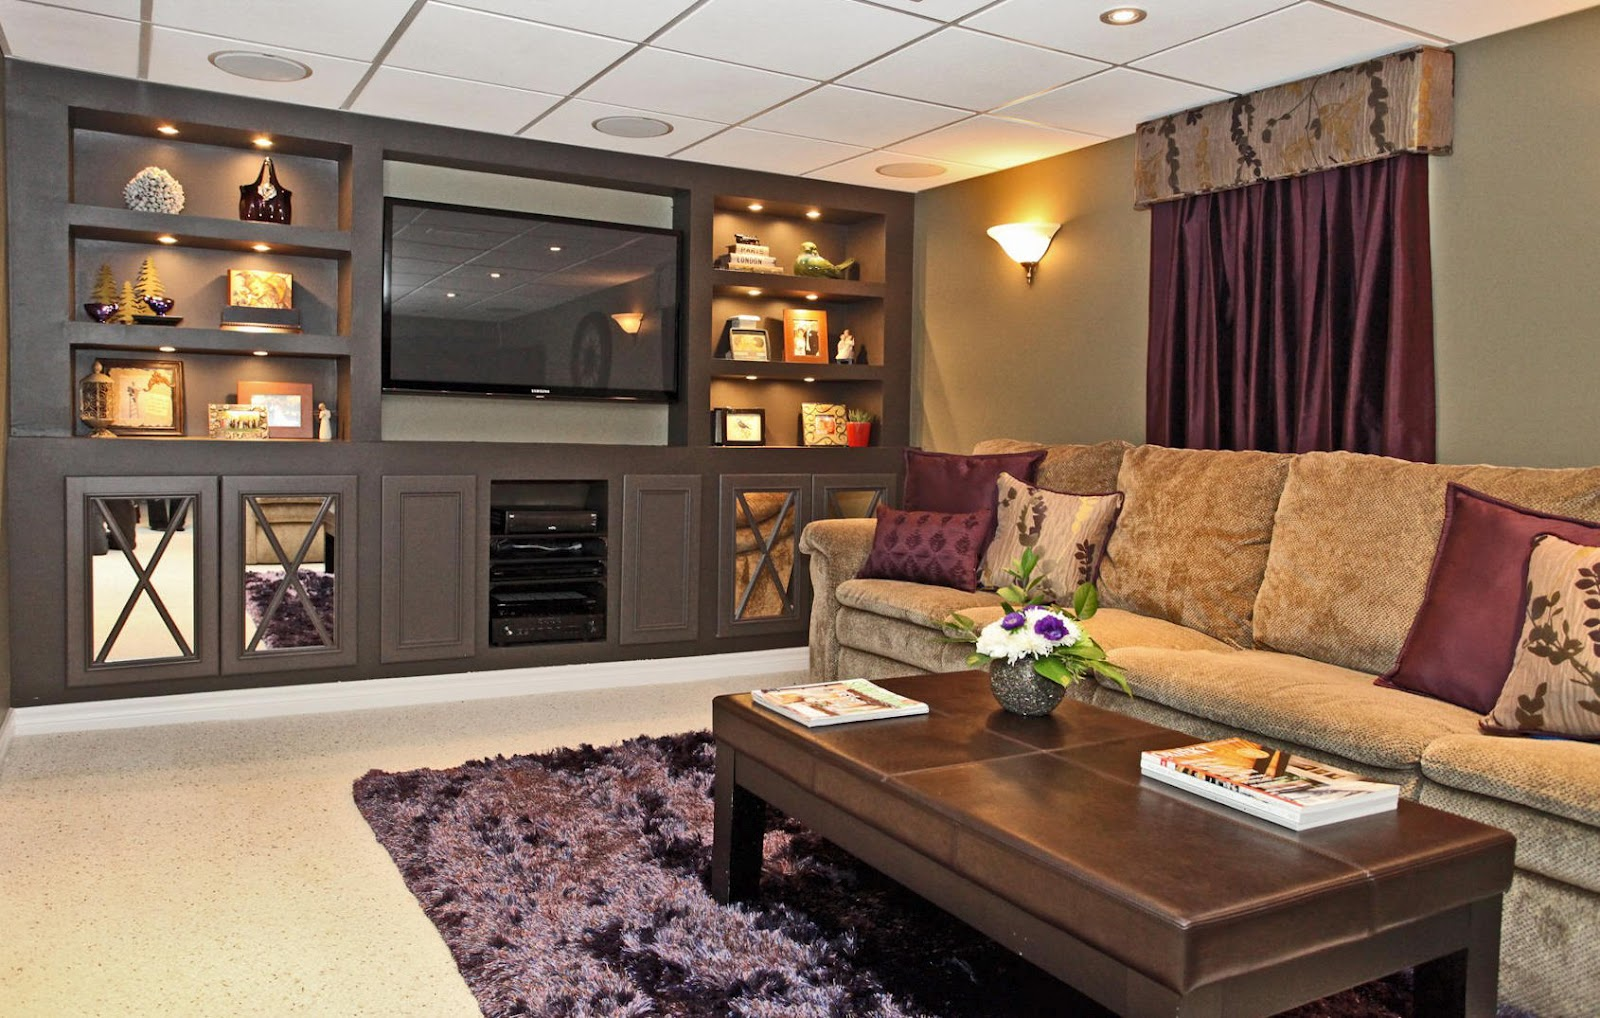 Brown and purple living room -  Delicious Decor Stunning Basement Renovation Not To Be Missed